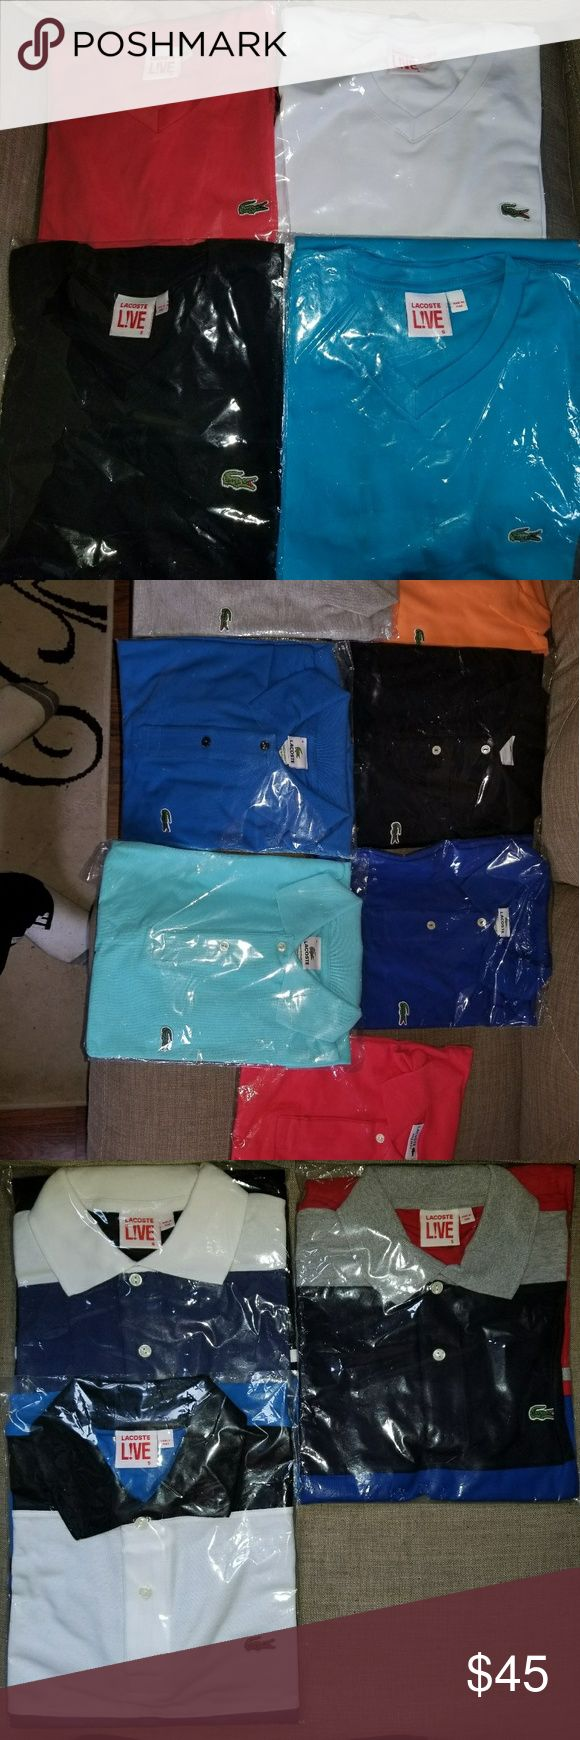 Lacoste shirts Lacoste shirts for sale. Brand new and original. Sizes medium and large. Lacoste Shirts